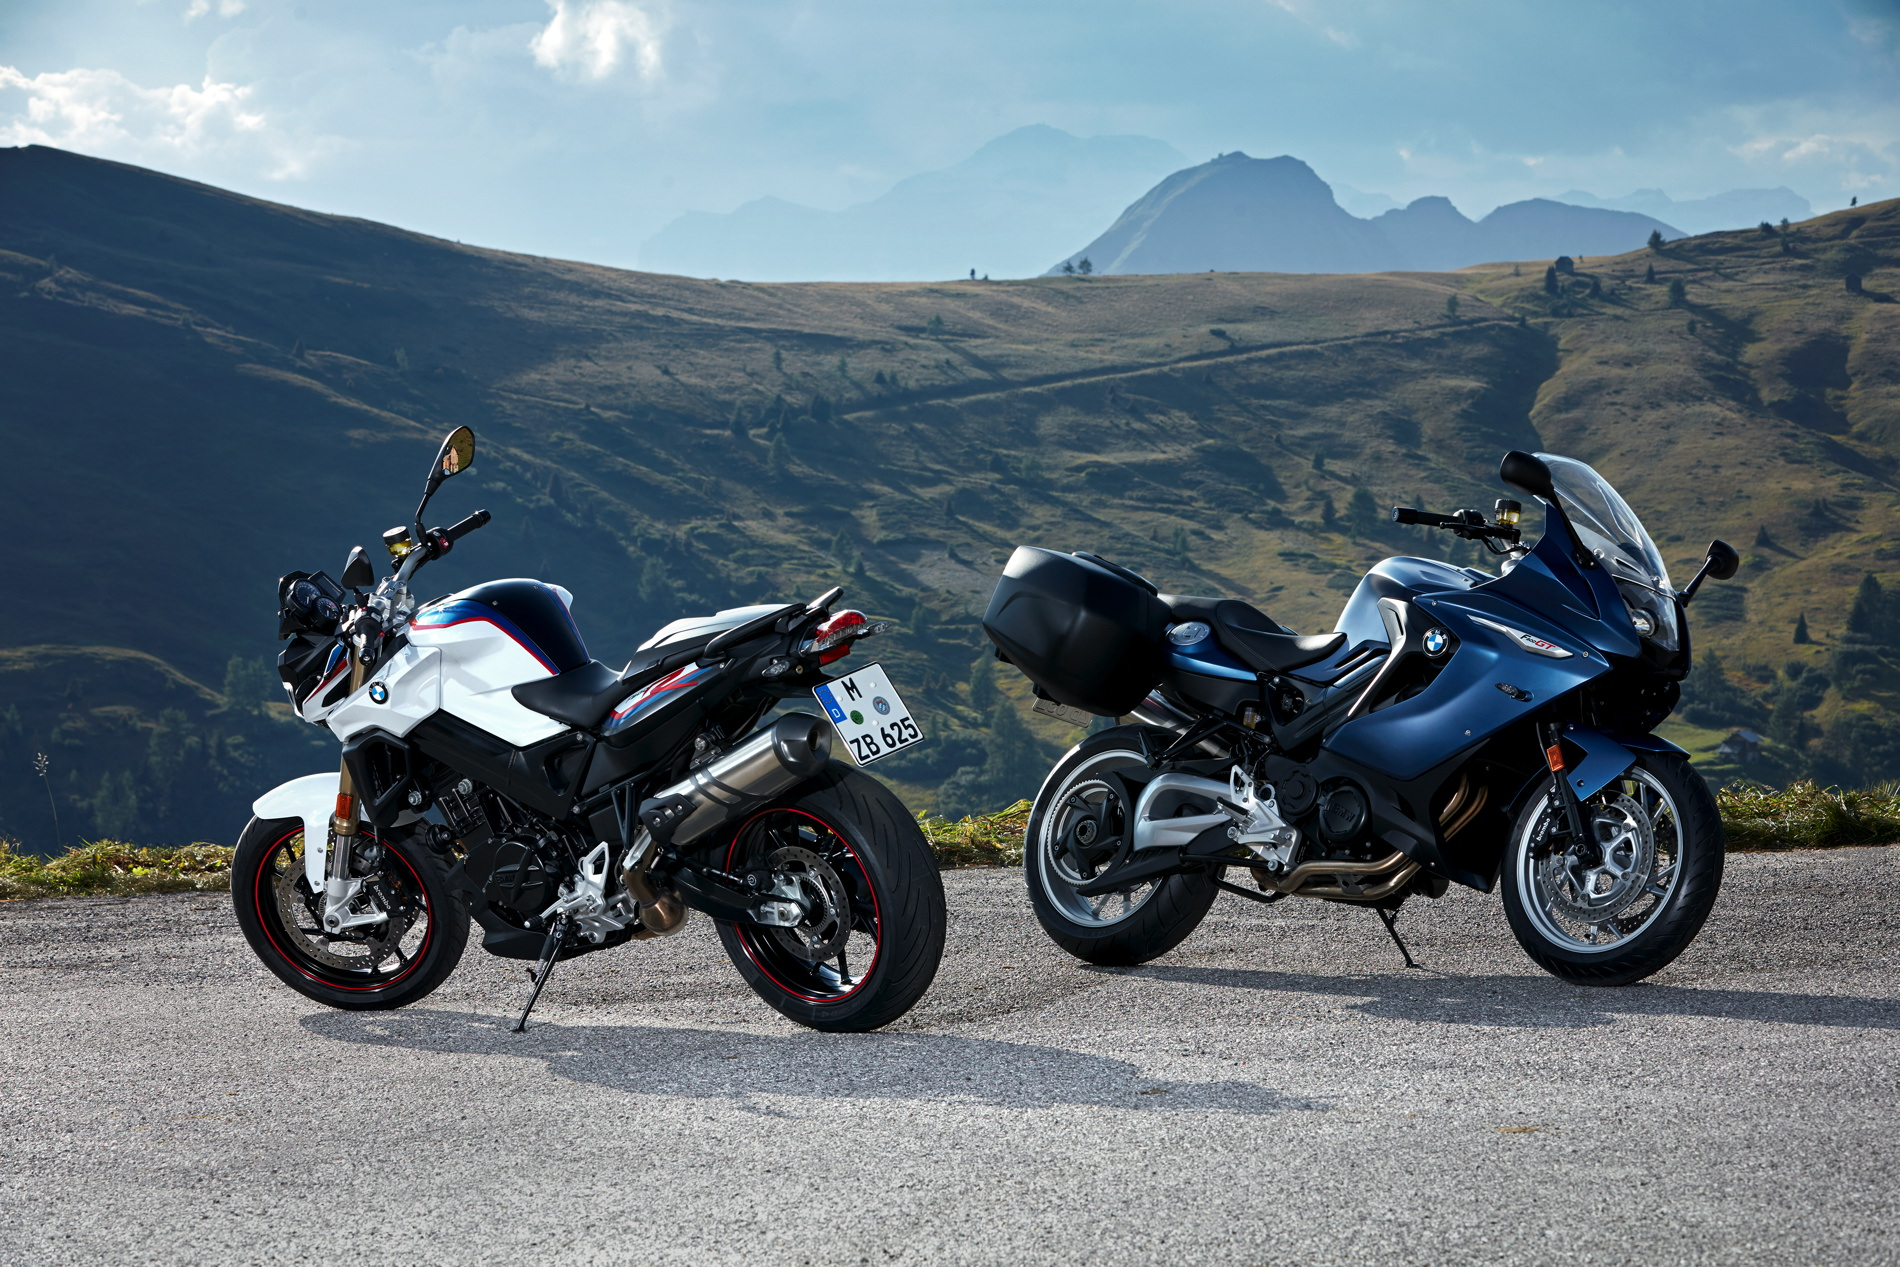 Bmw F 800 R And F 800 Gt Get Refreshed